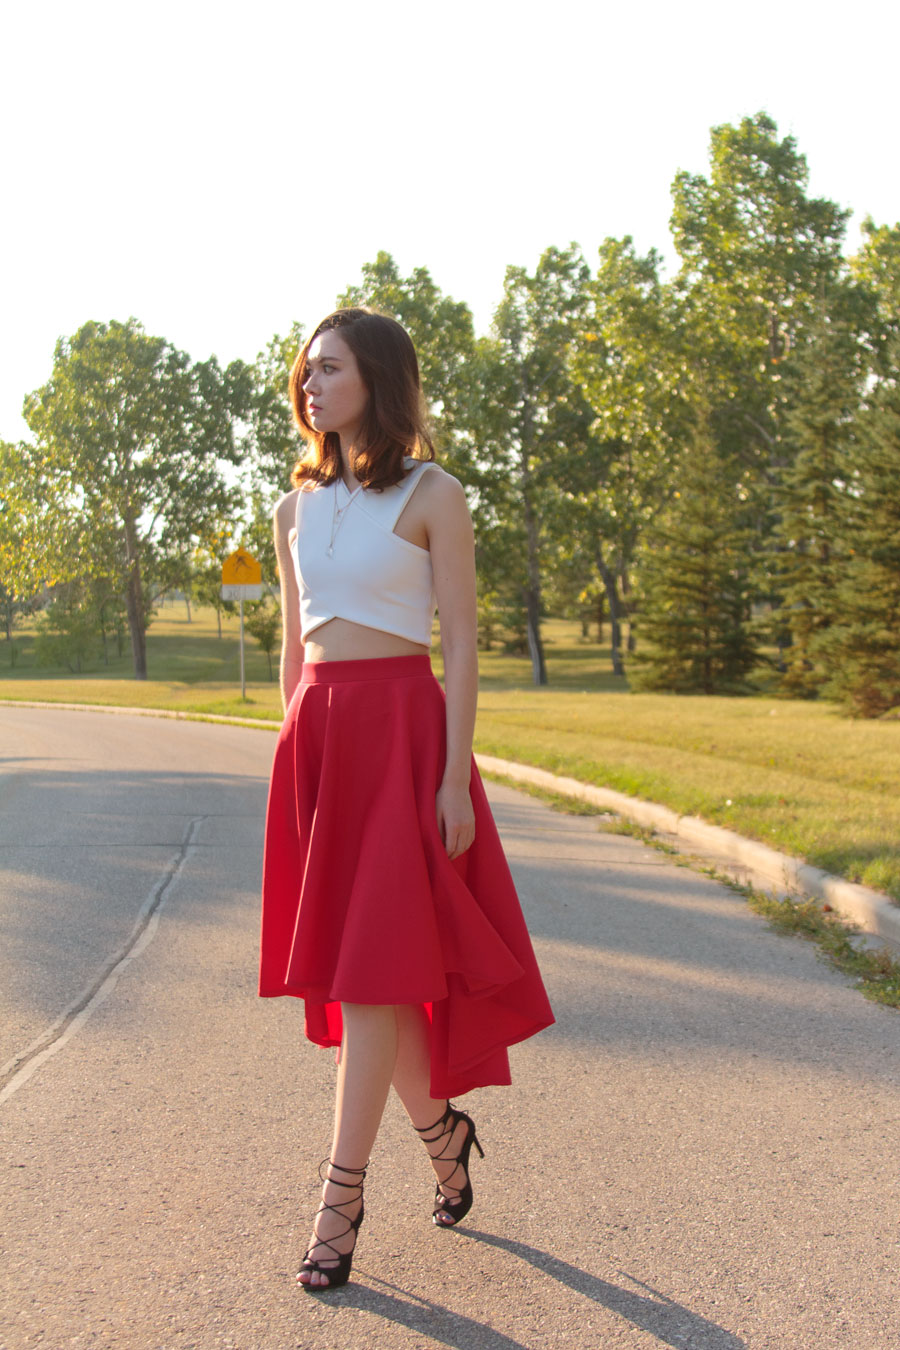 dipped hem, crop top, asymmetrical skirt, lace up sandals, summer fashion, outfit, personal style